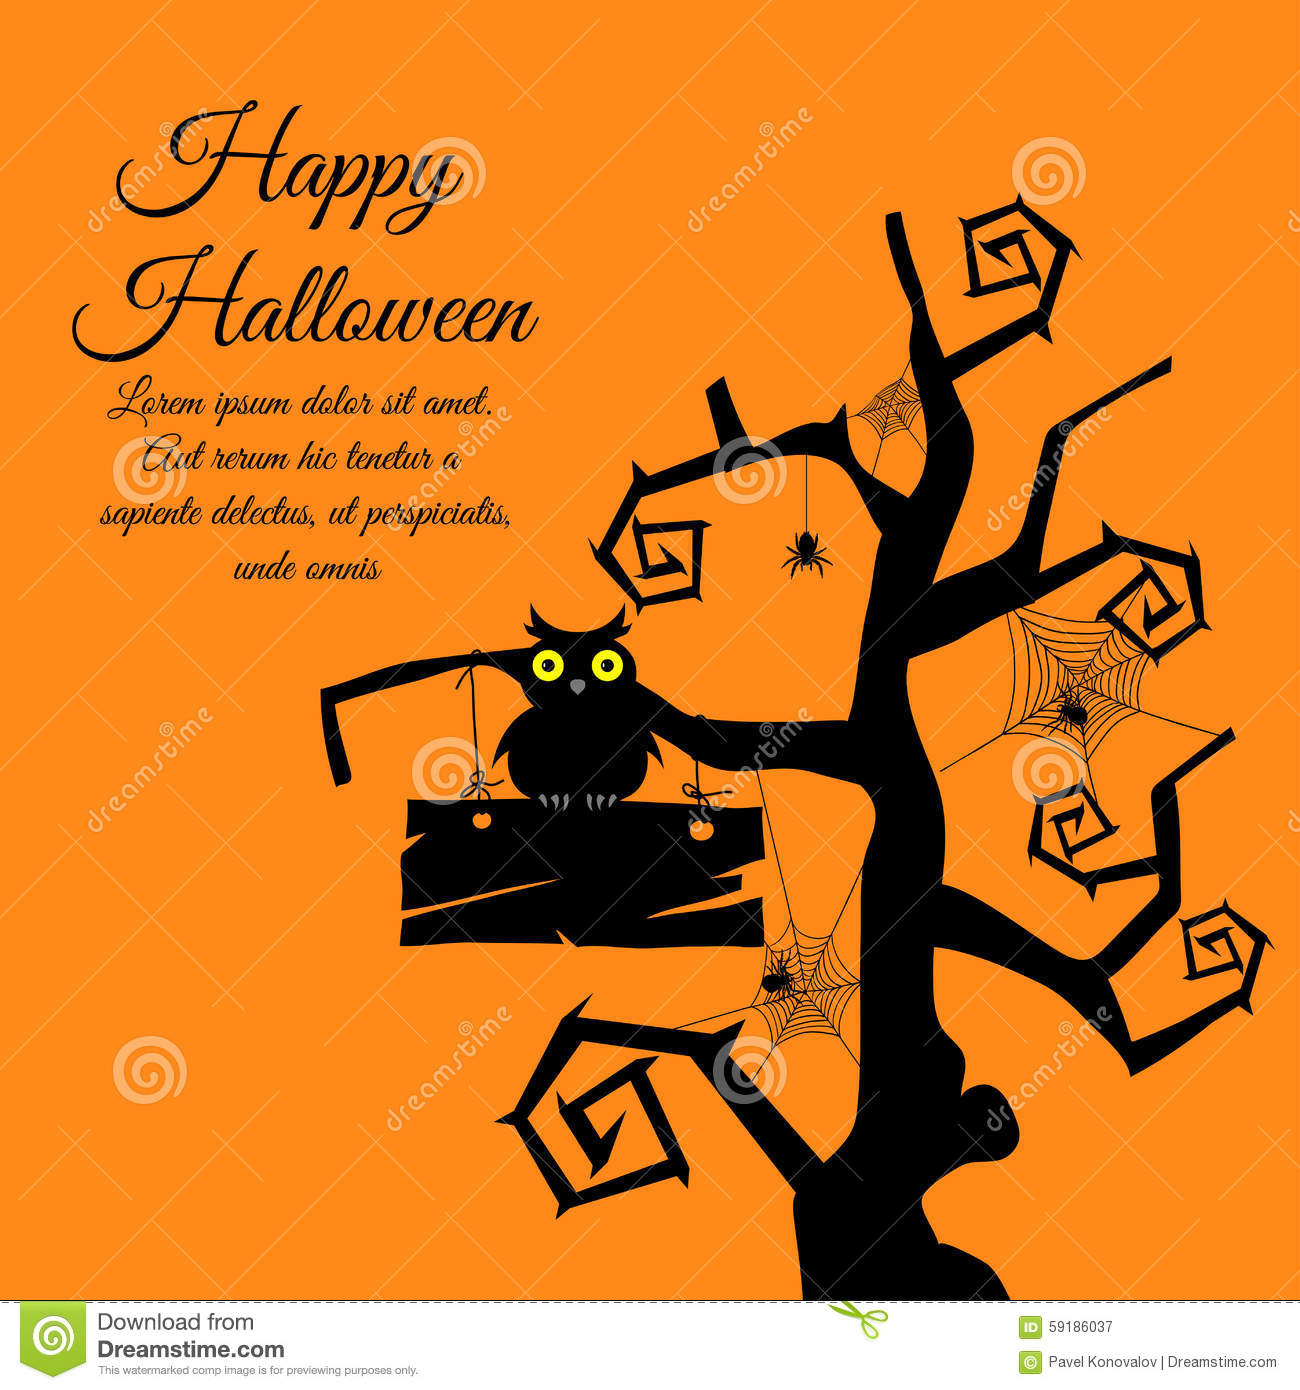 halloween-greeting-card-gothic-tree-timber-owl-webs-spiders-over-orange-background-vector